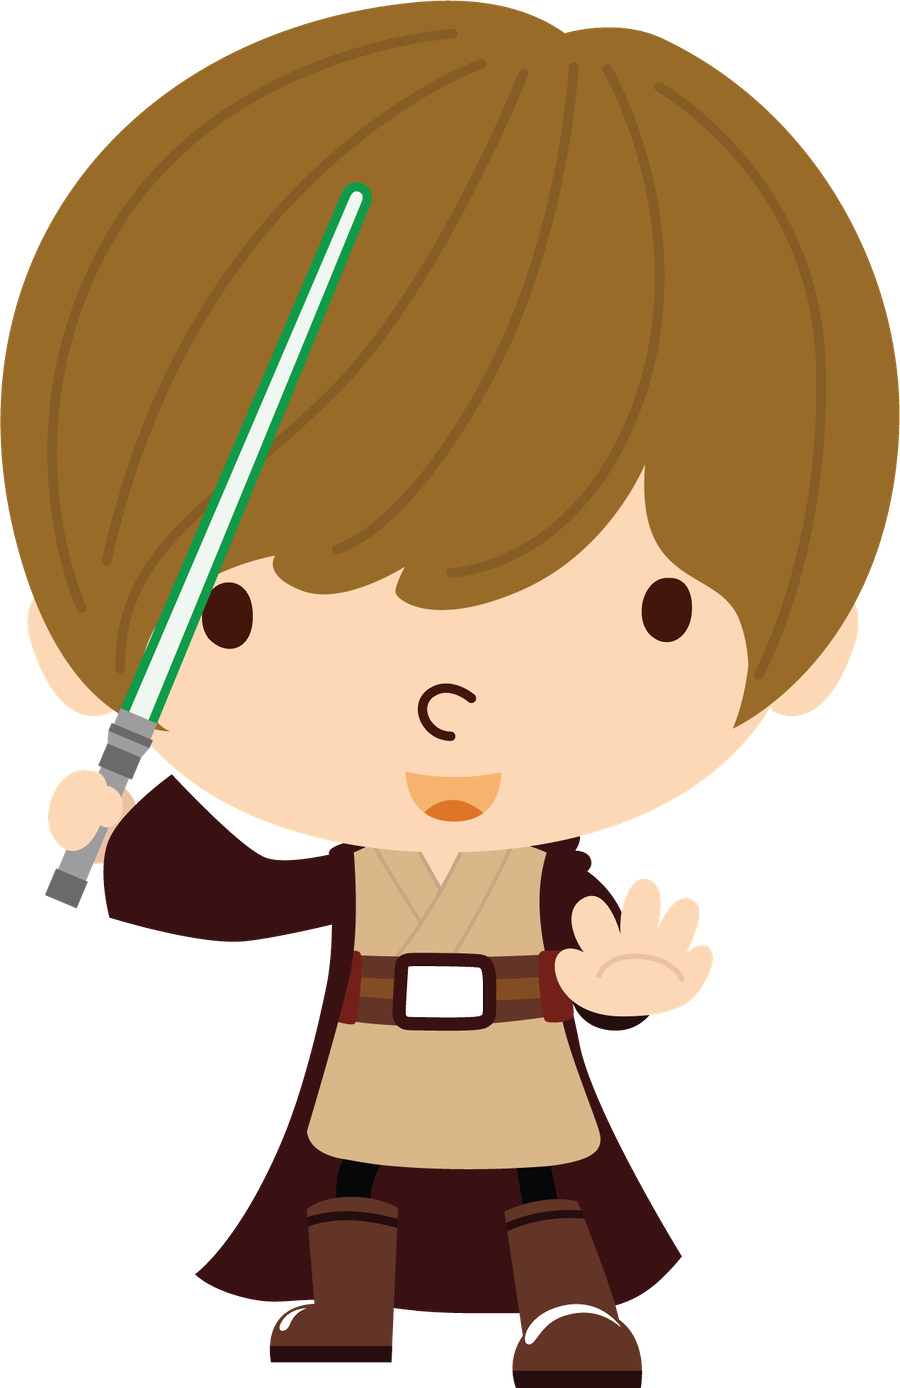 Star wars force clipart